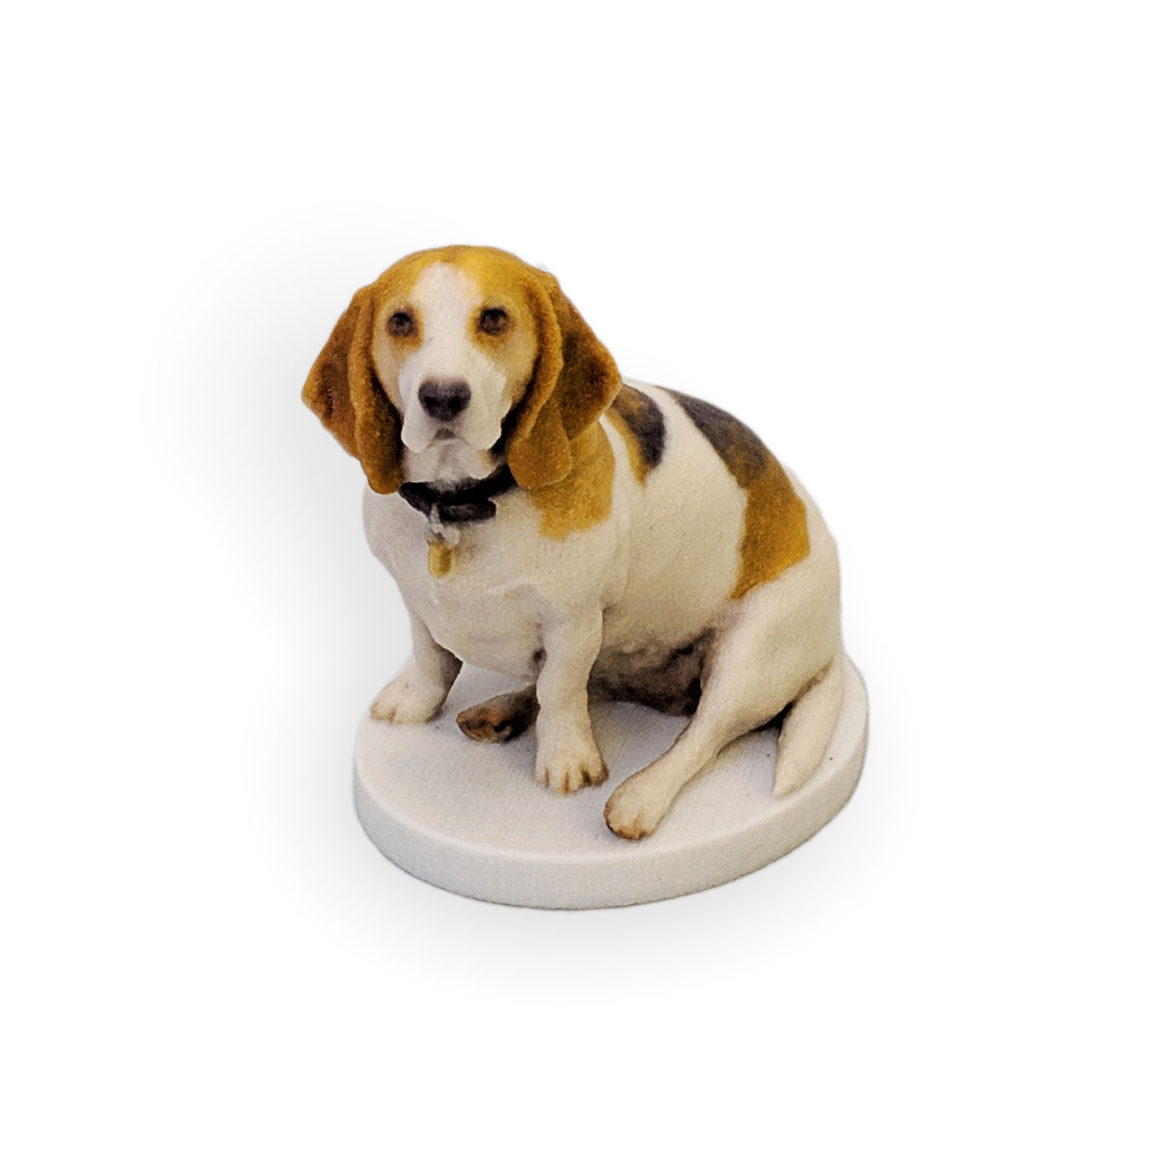 my3Dtwin, 3D Printed Figurine of a Dog